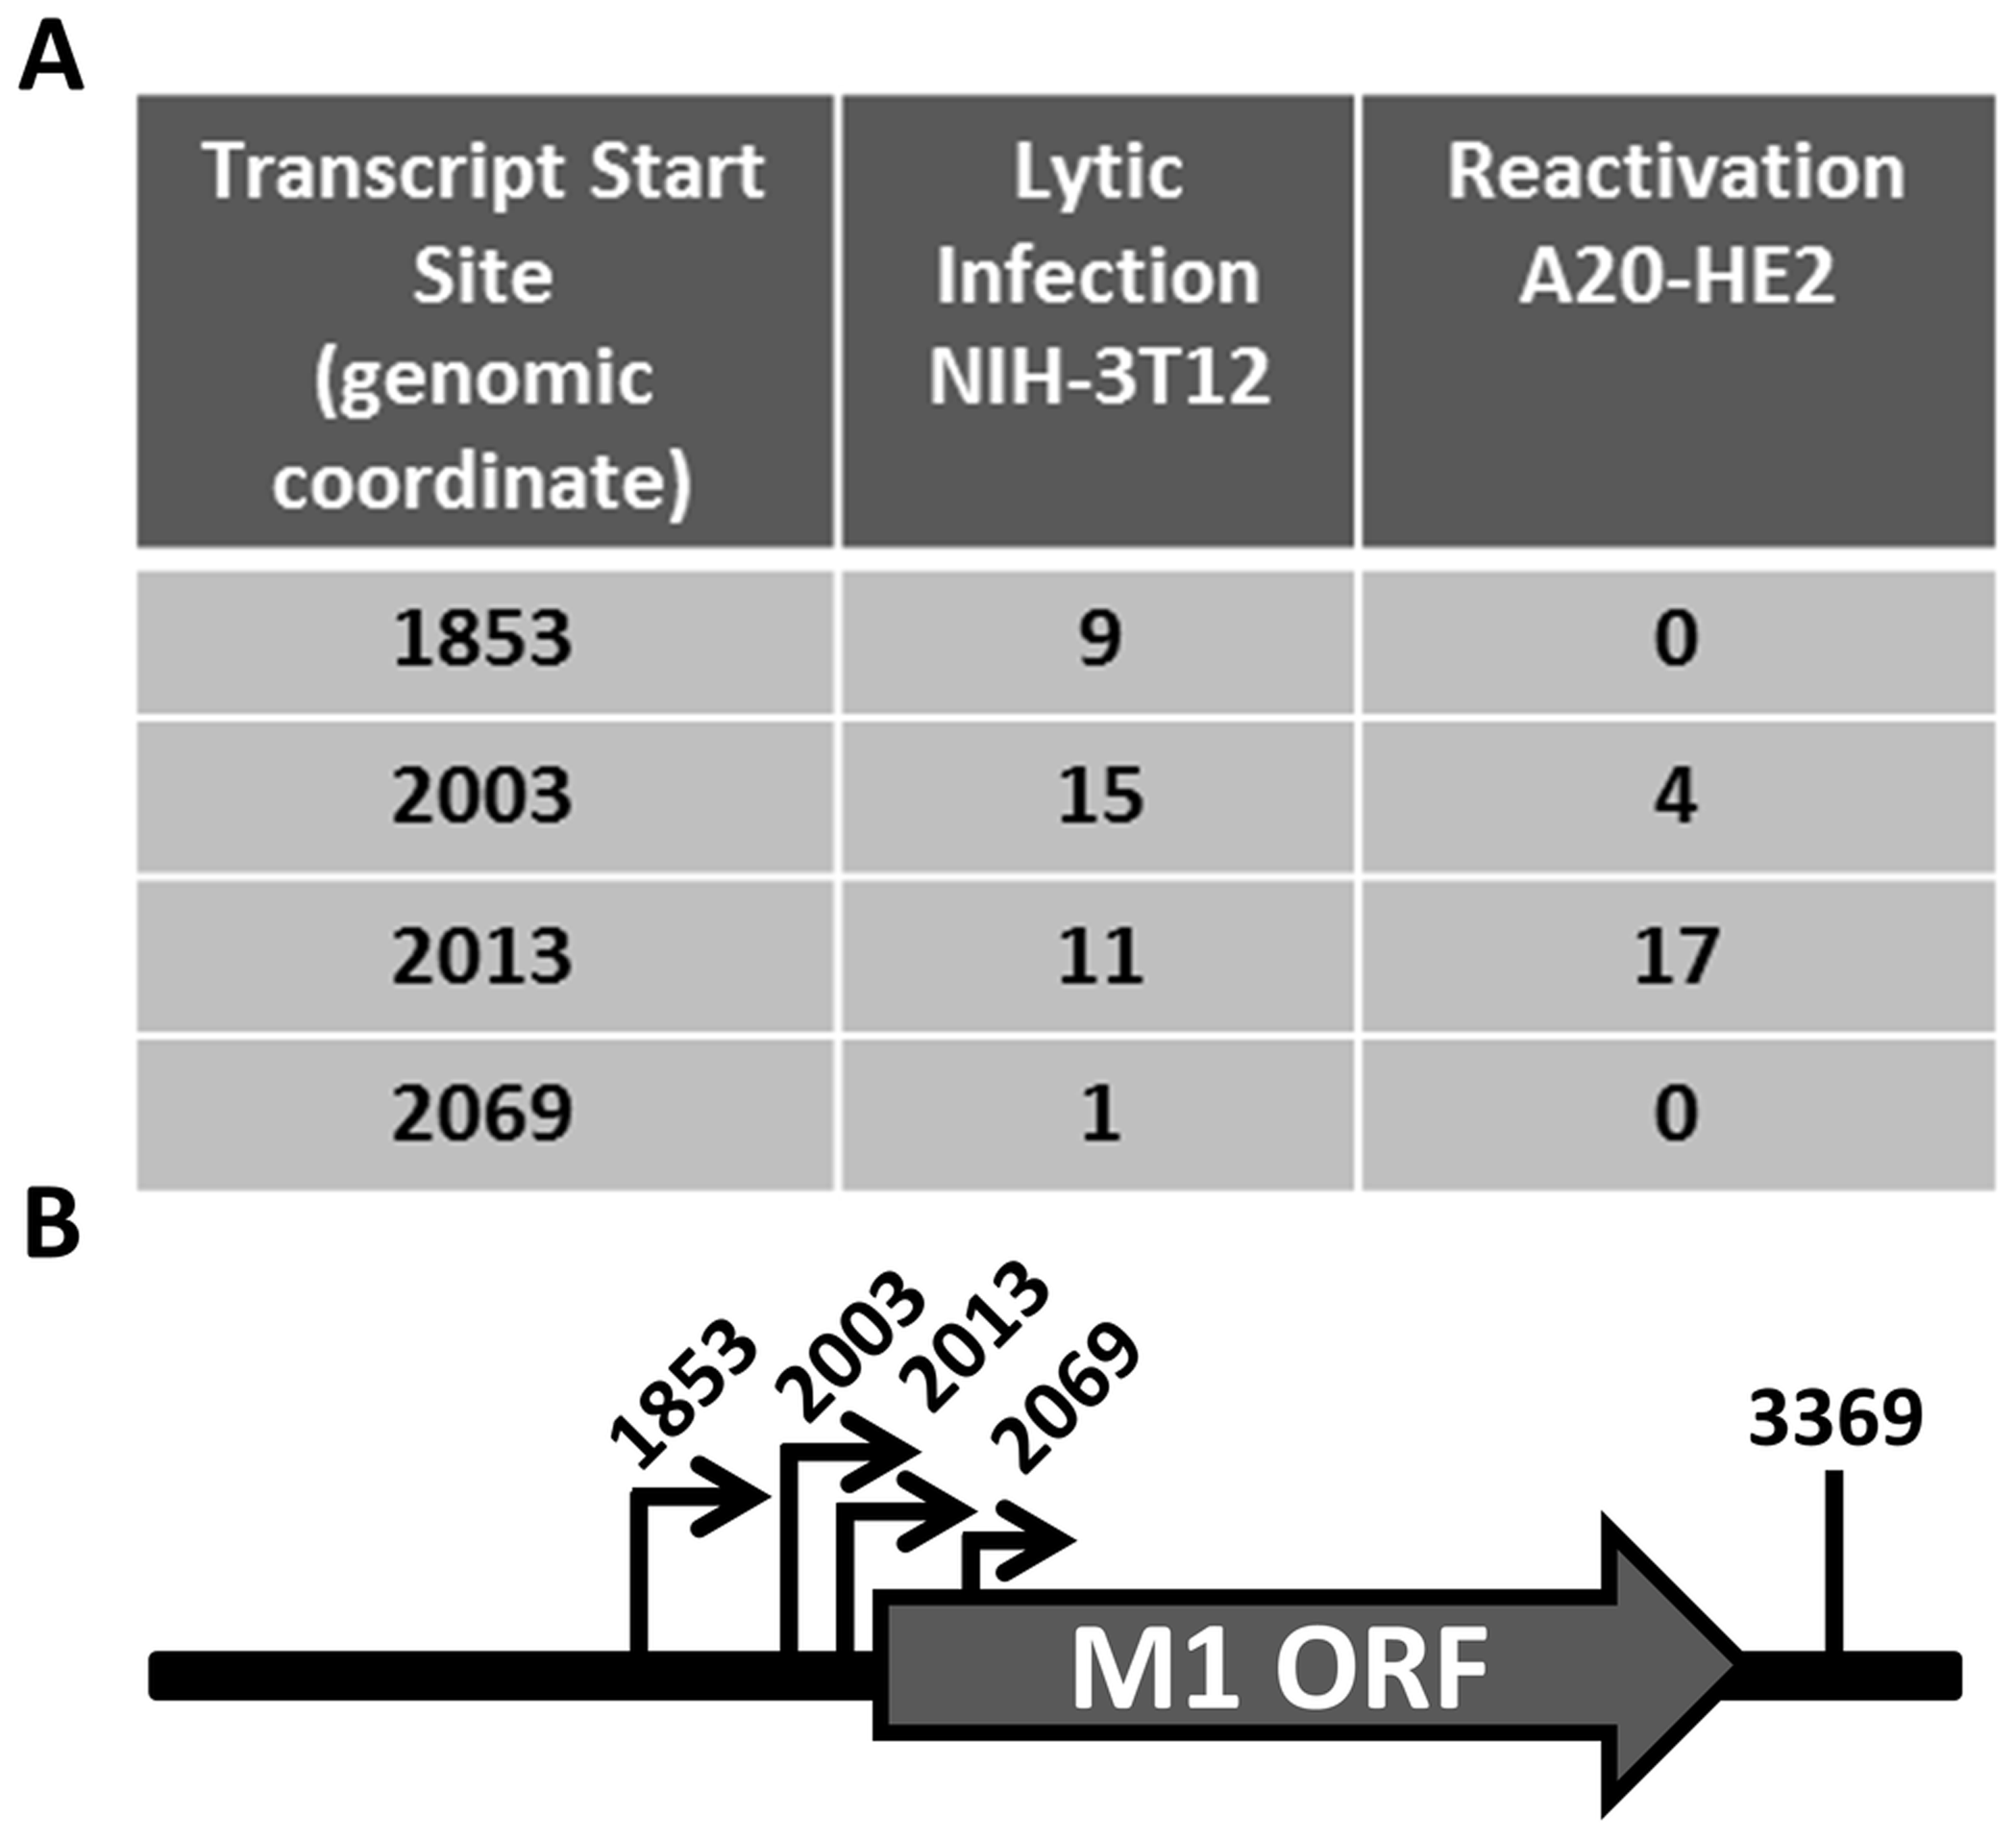 M1 transcript mapping identifies initiation and termination sites which result in a 1.3 and 1.5